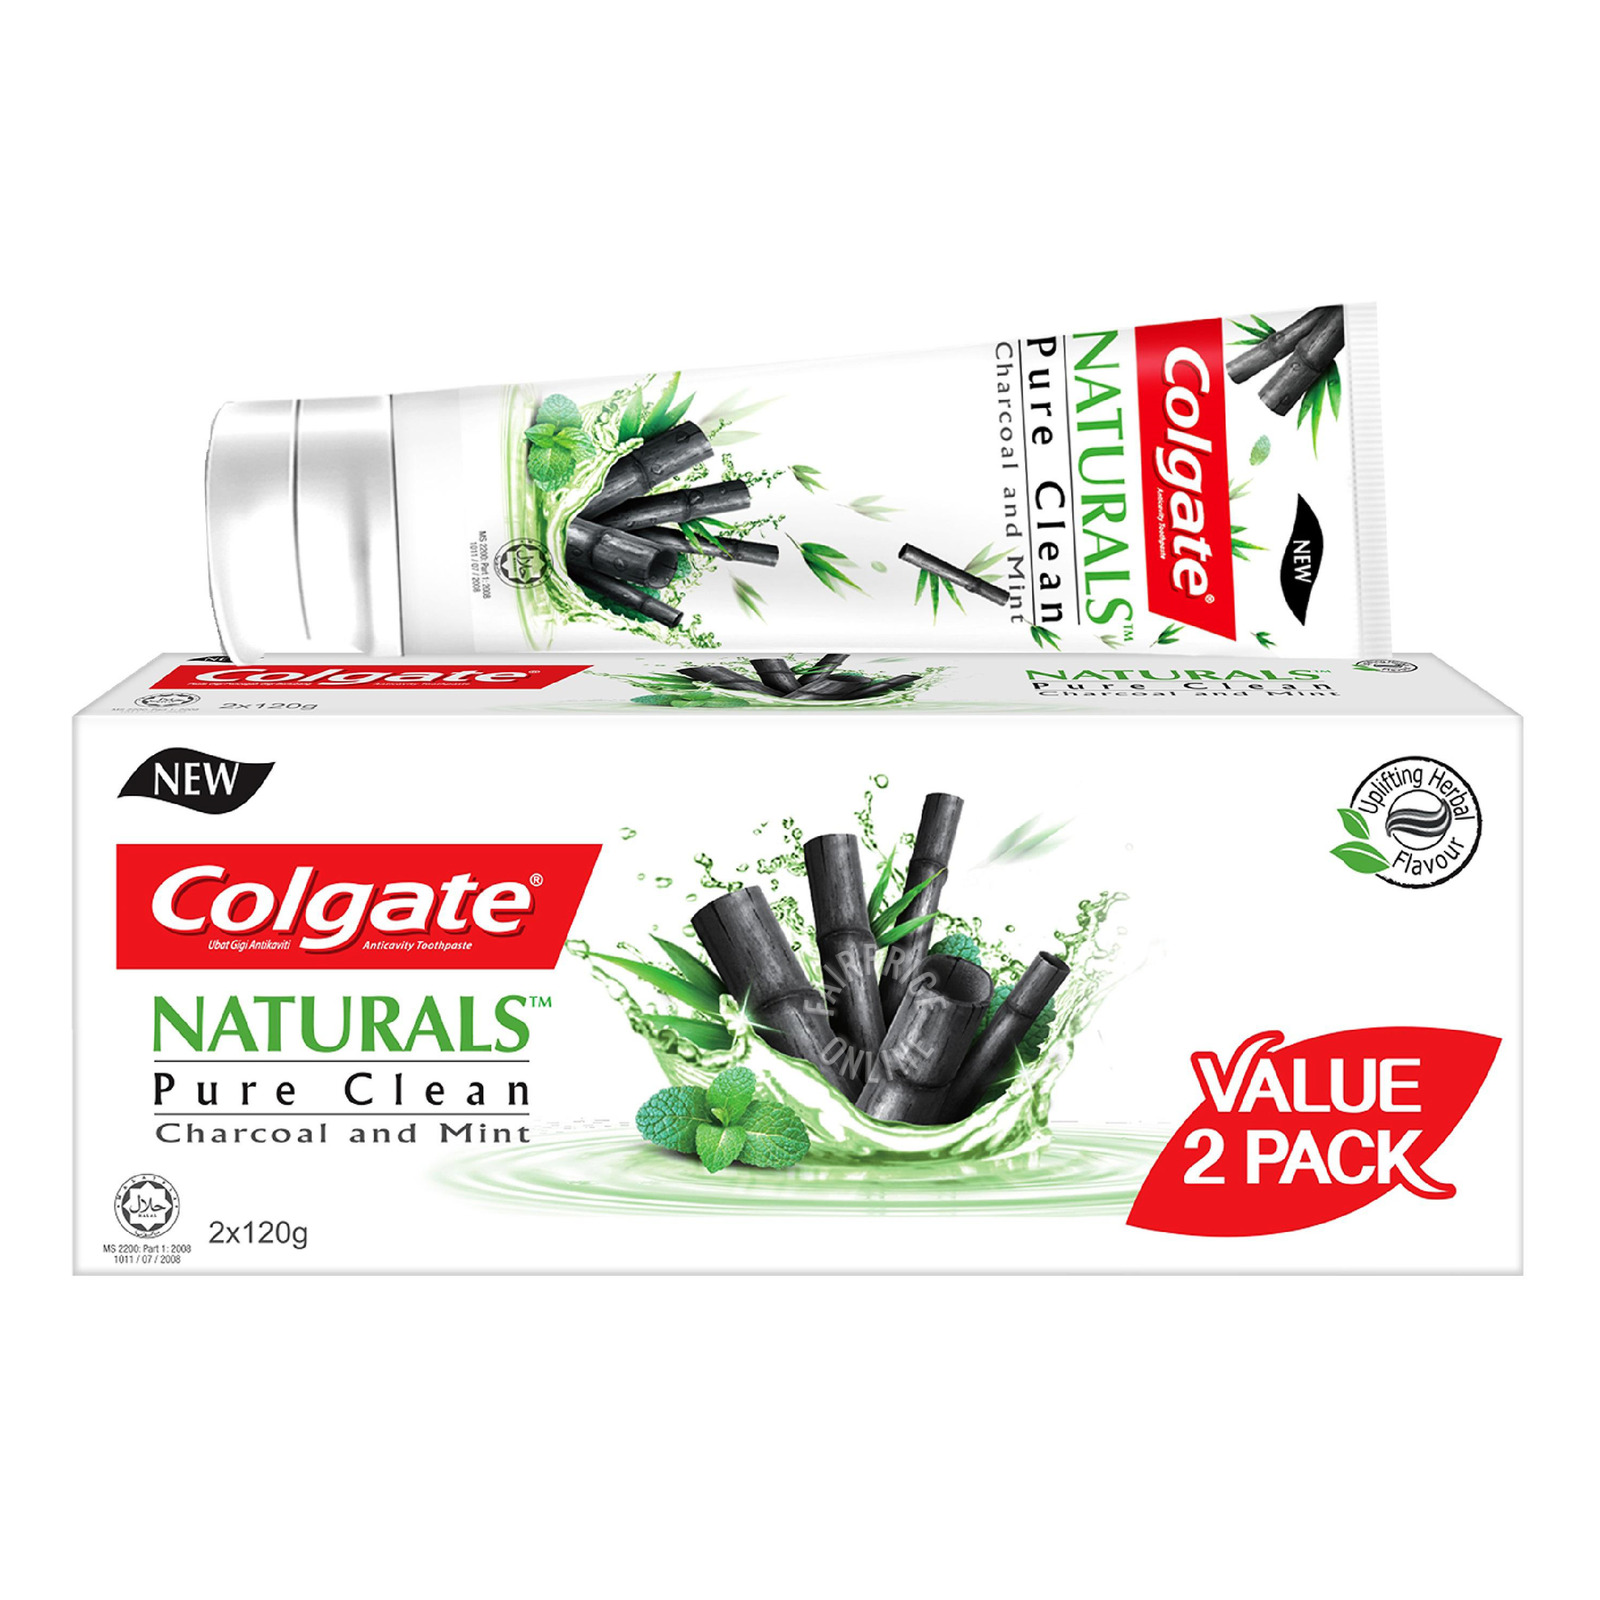 Colgate Naturals Toothpaste - Pure Clean